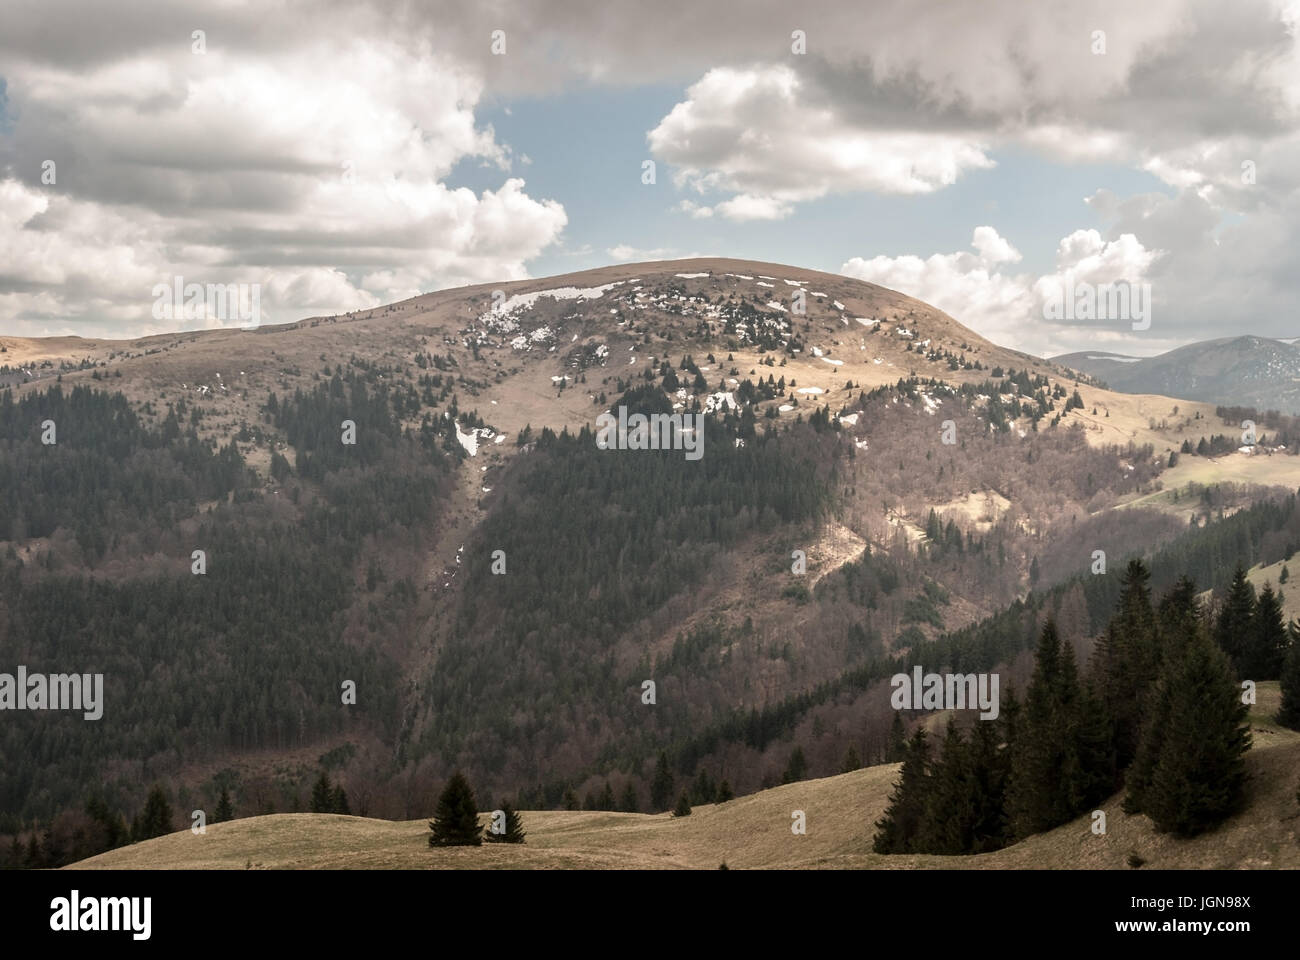 Ploska hill from Javorina hill in Velka Fatra mountains in Slovakia during spring day with blue sky and clouds Stock Photo